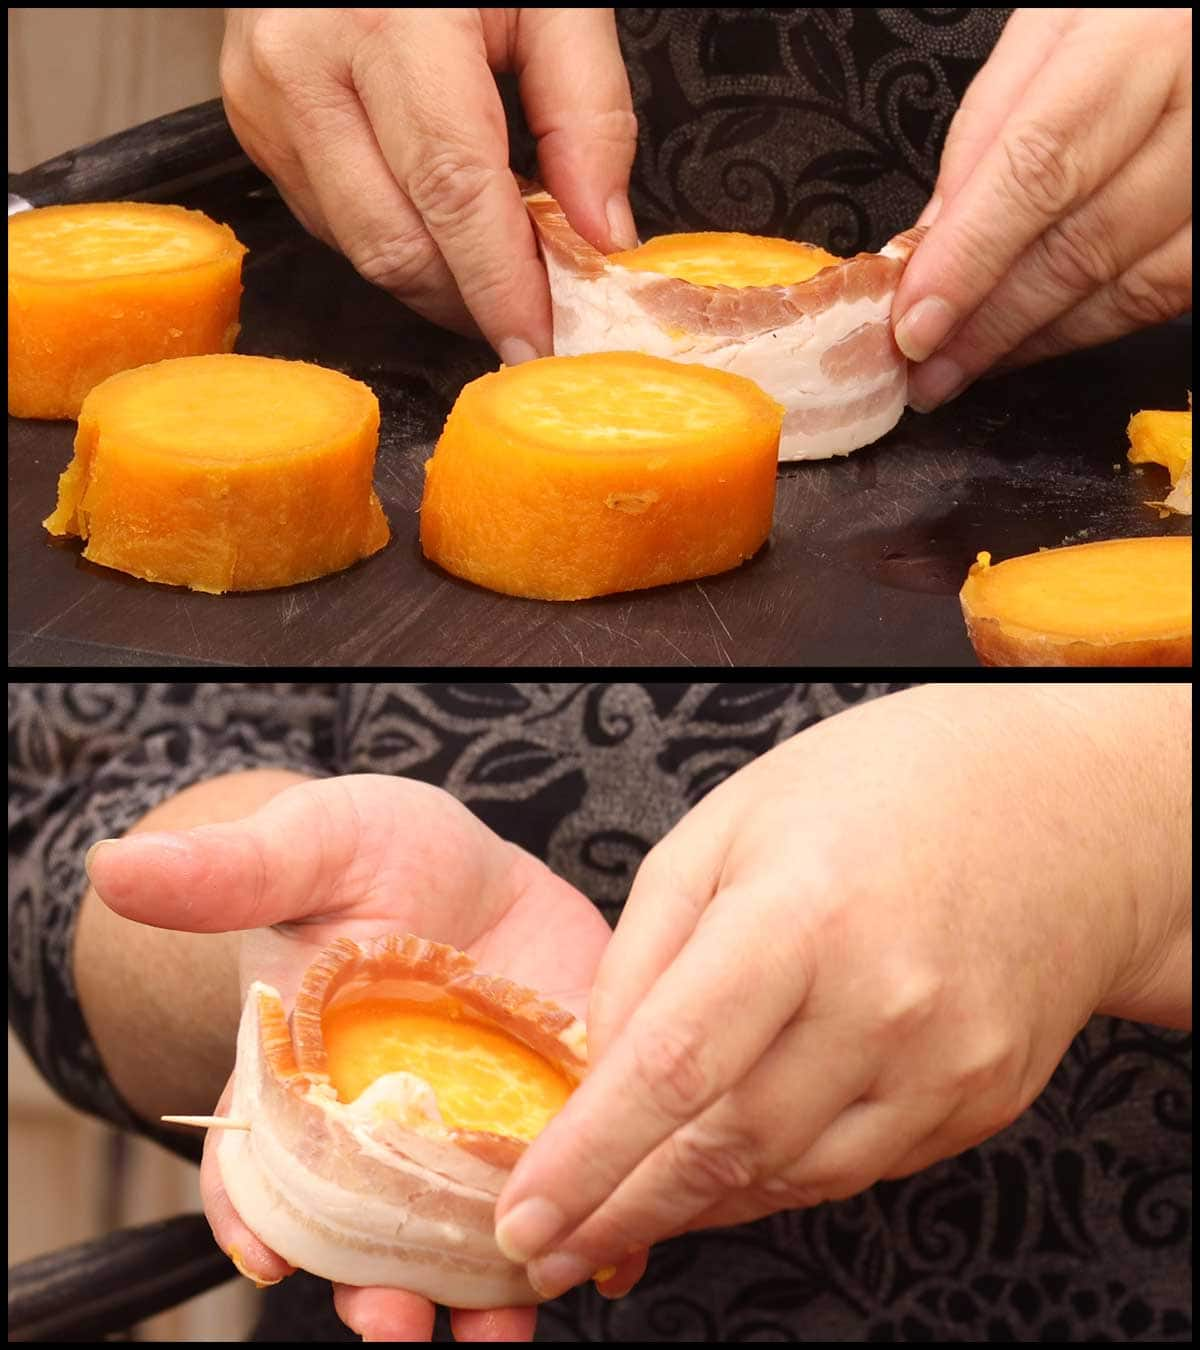 wrapping sweet potatoes in bacon and securing with a toothpick